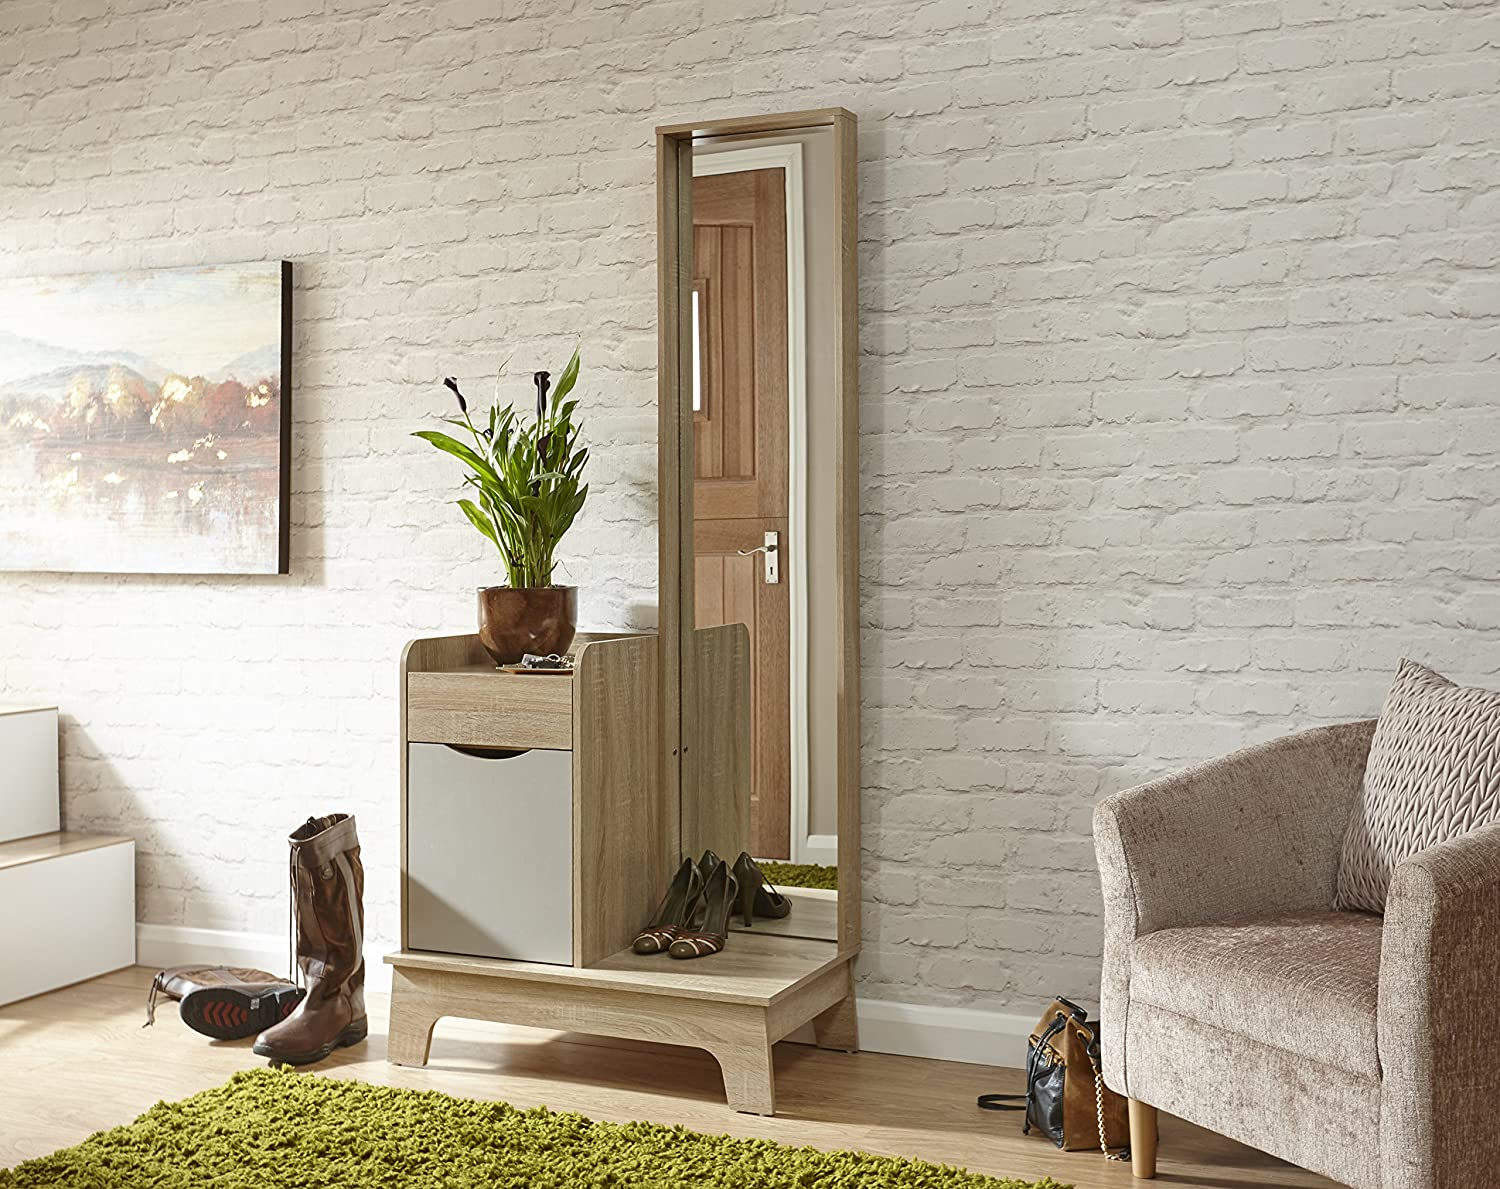 Luna Hallway Storage Mirrored Cabinet with Full Length Mirror - Light Grey Oak